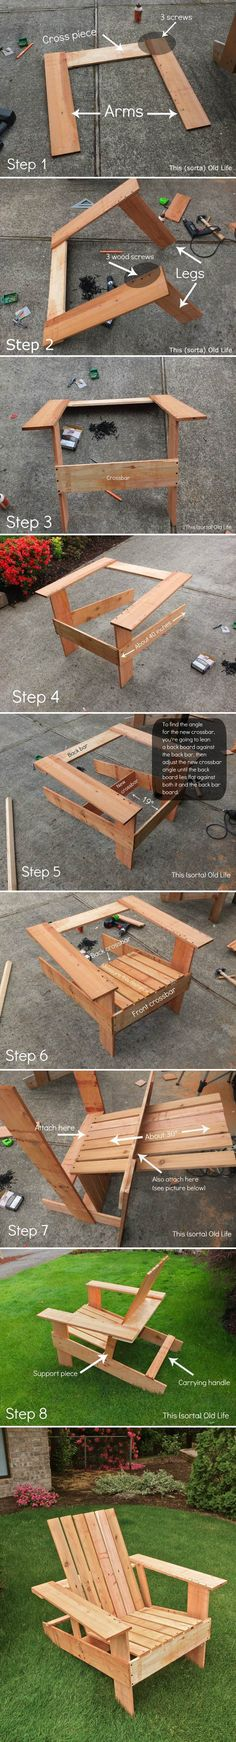 Pinned onto Useful Board in DIY Crafts Category